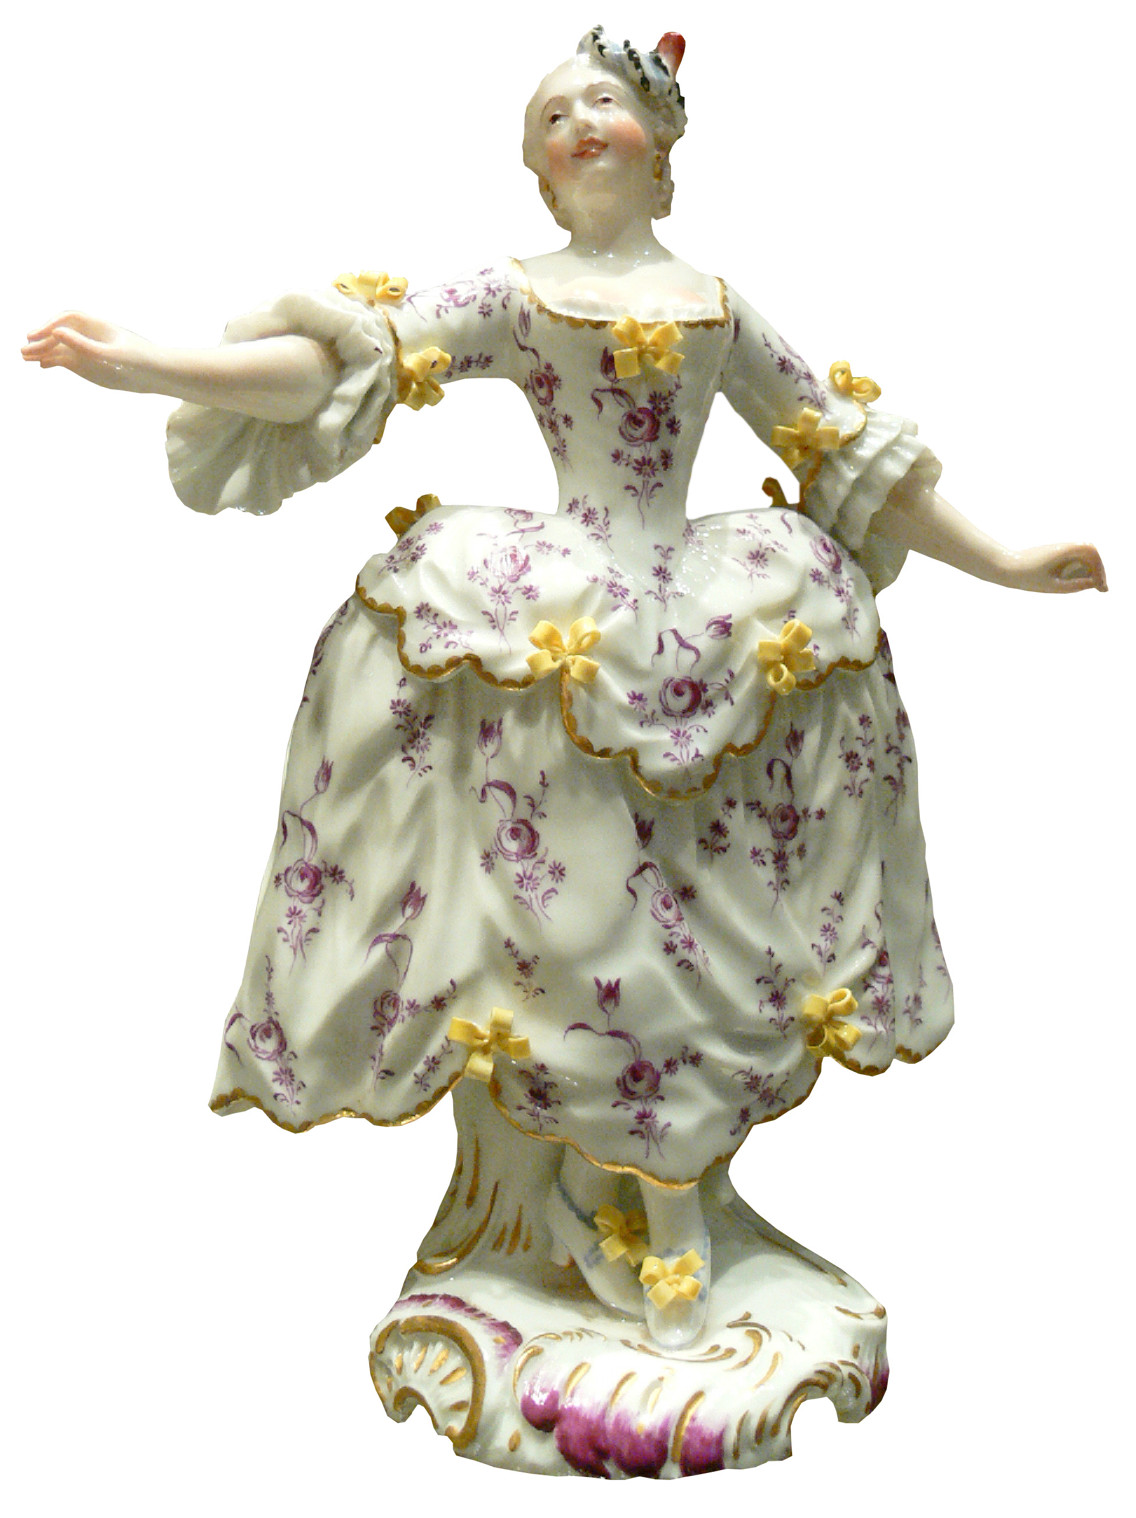 Porcelain figurine dancer wearing a pannier